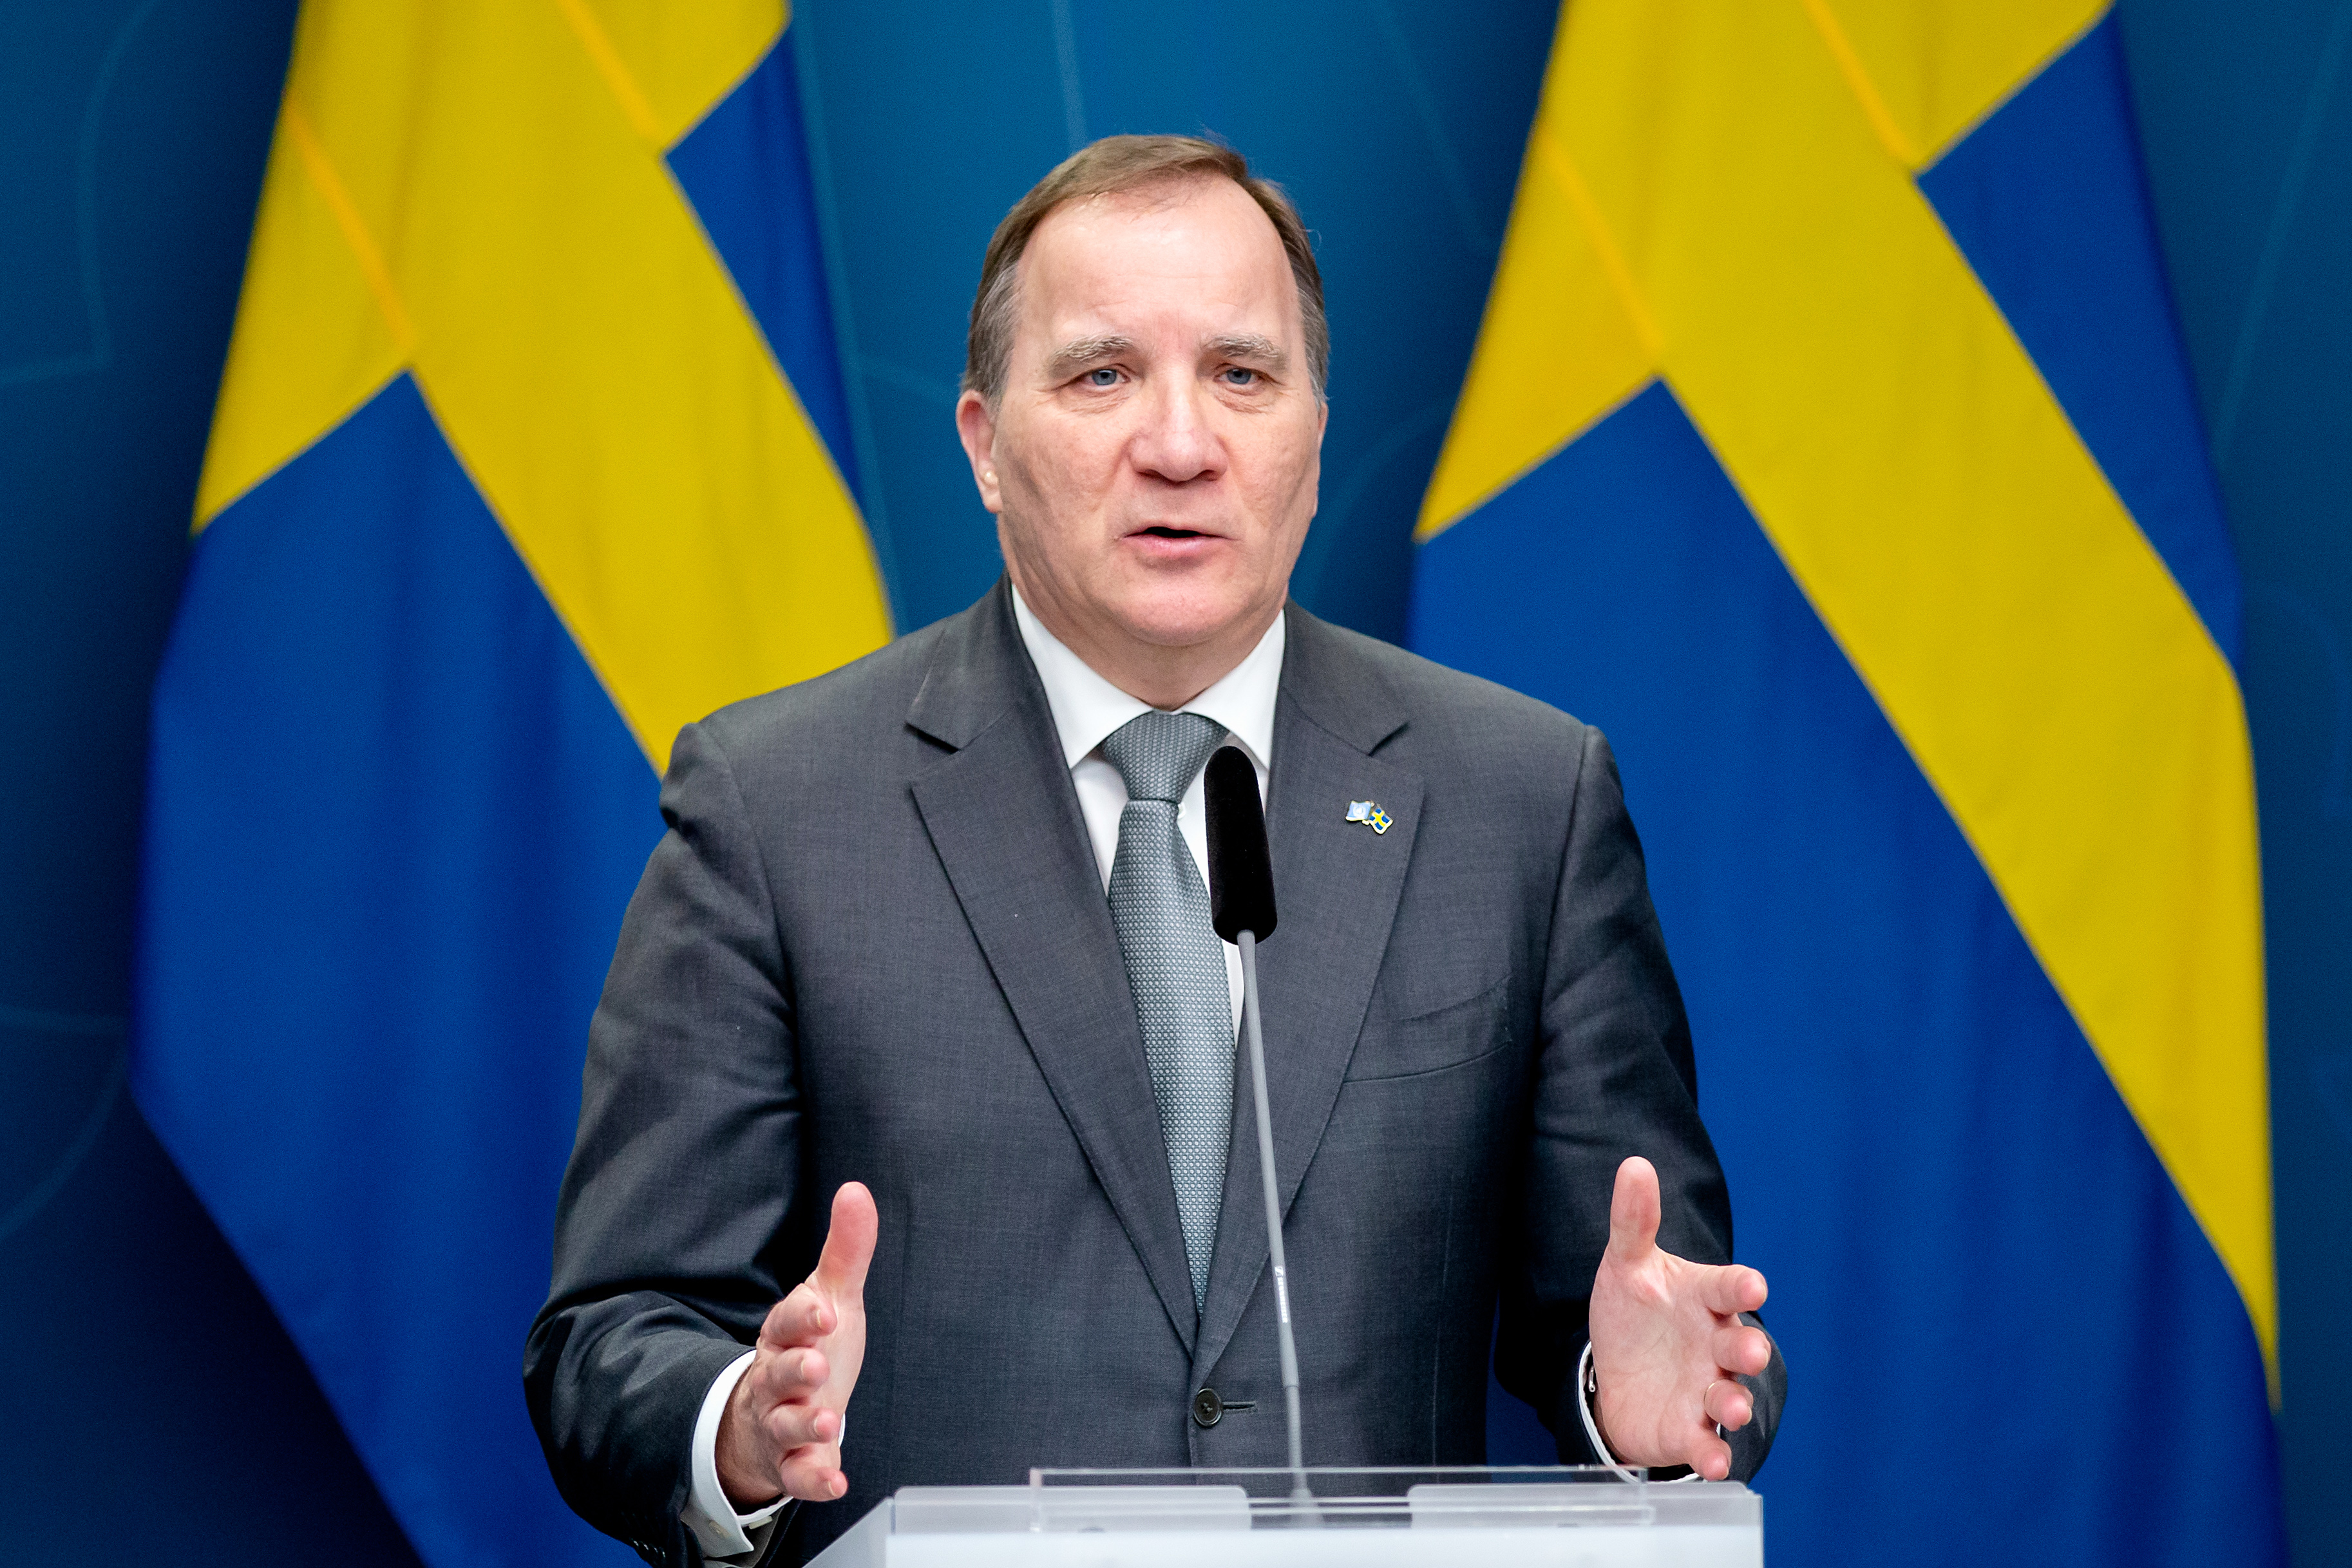 Prime Minister Stefan Löfven at press meeting after the Summit